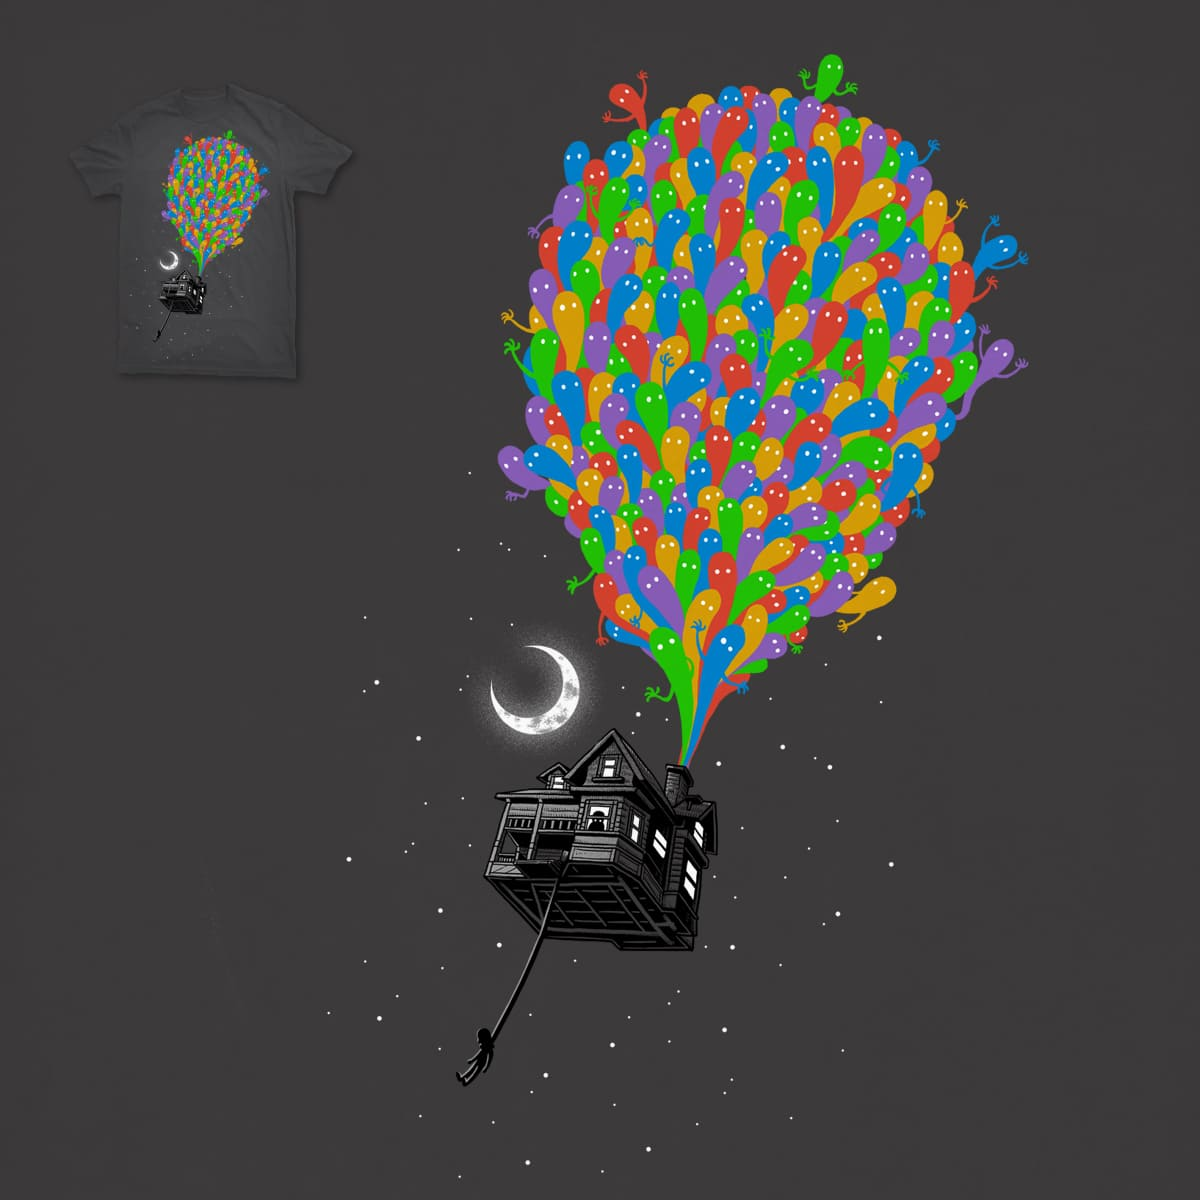 Up But Haunted by ben chen on Threadless